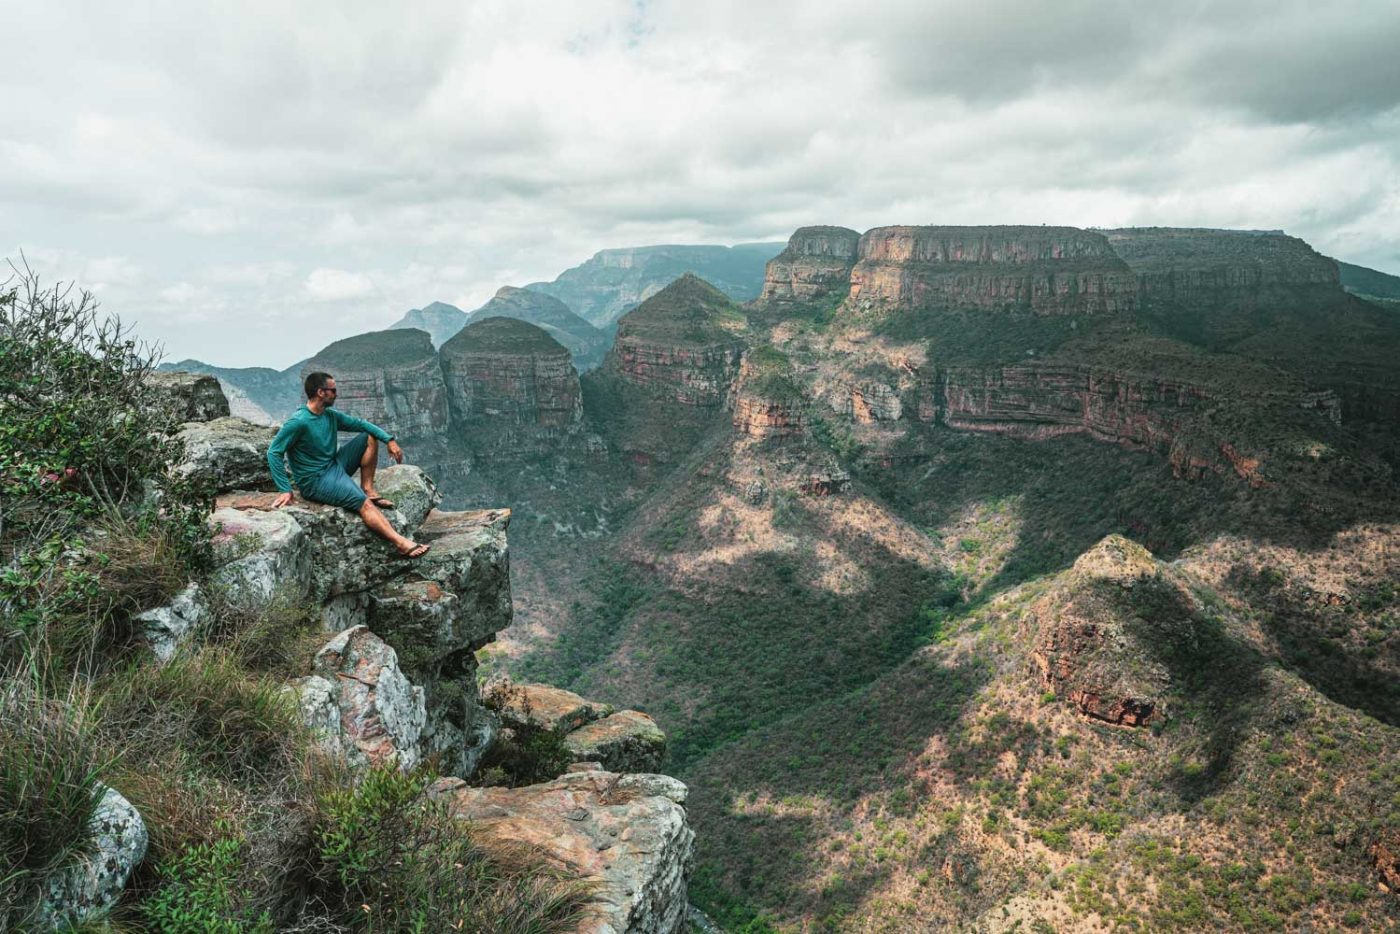 Overlooking the Three Sisters in Blyde River Canyon